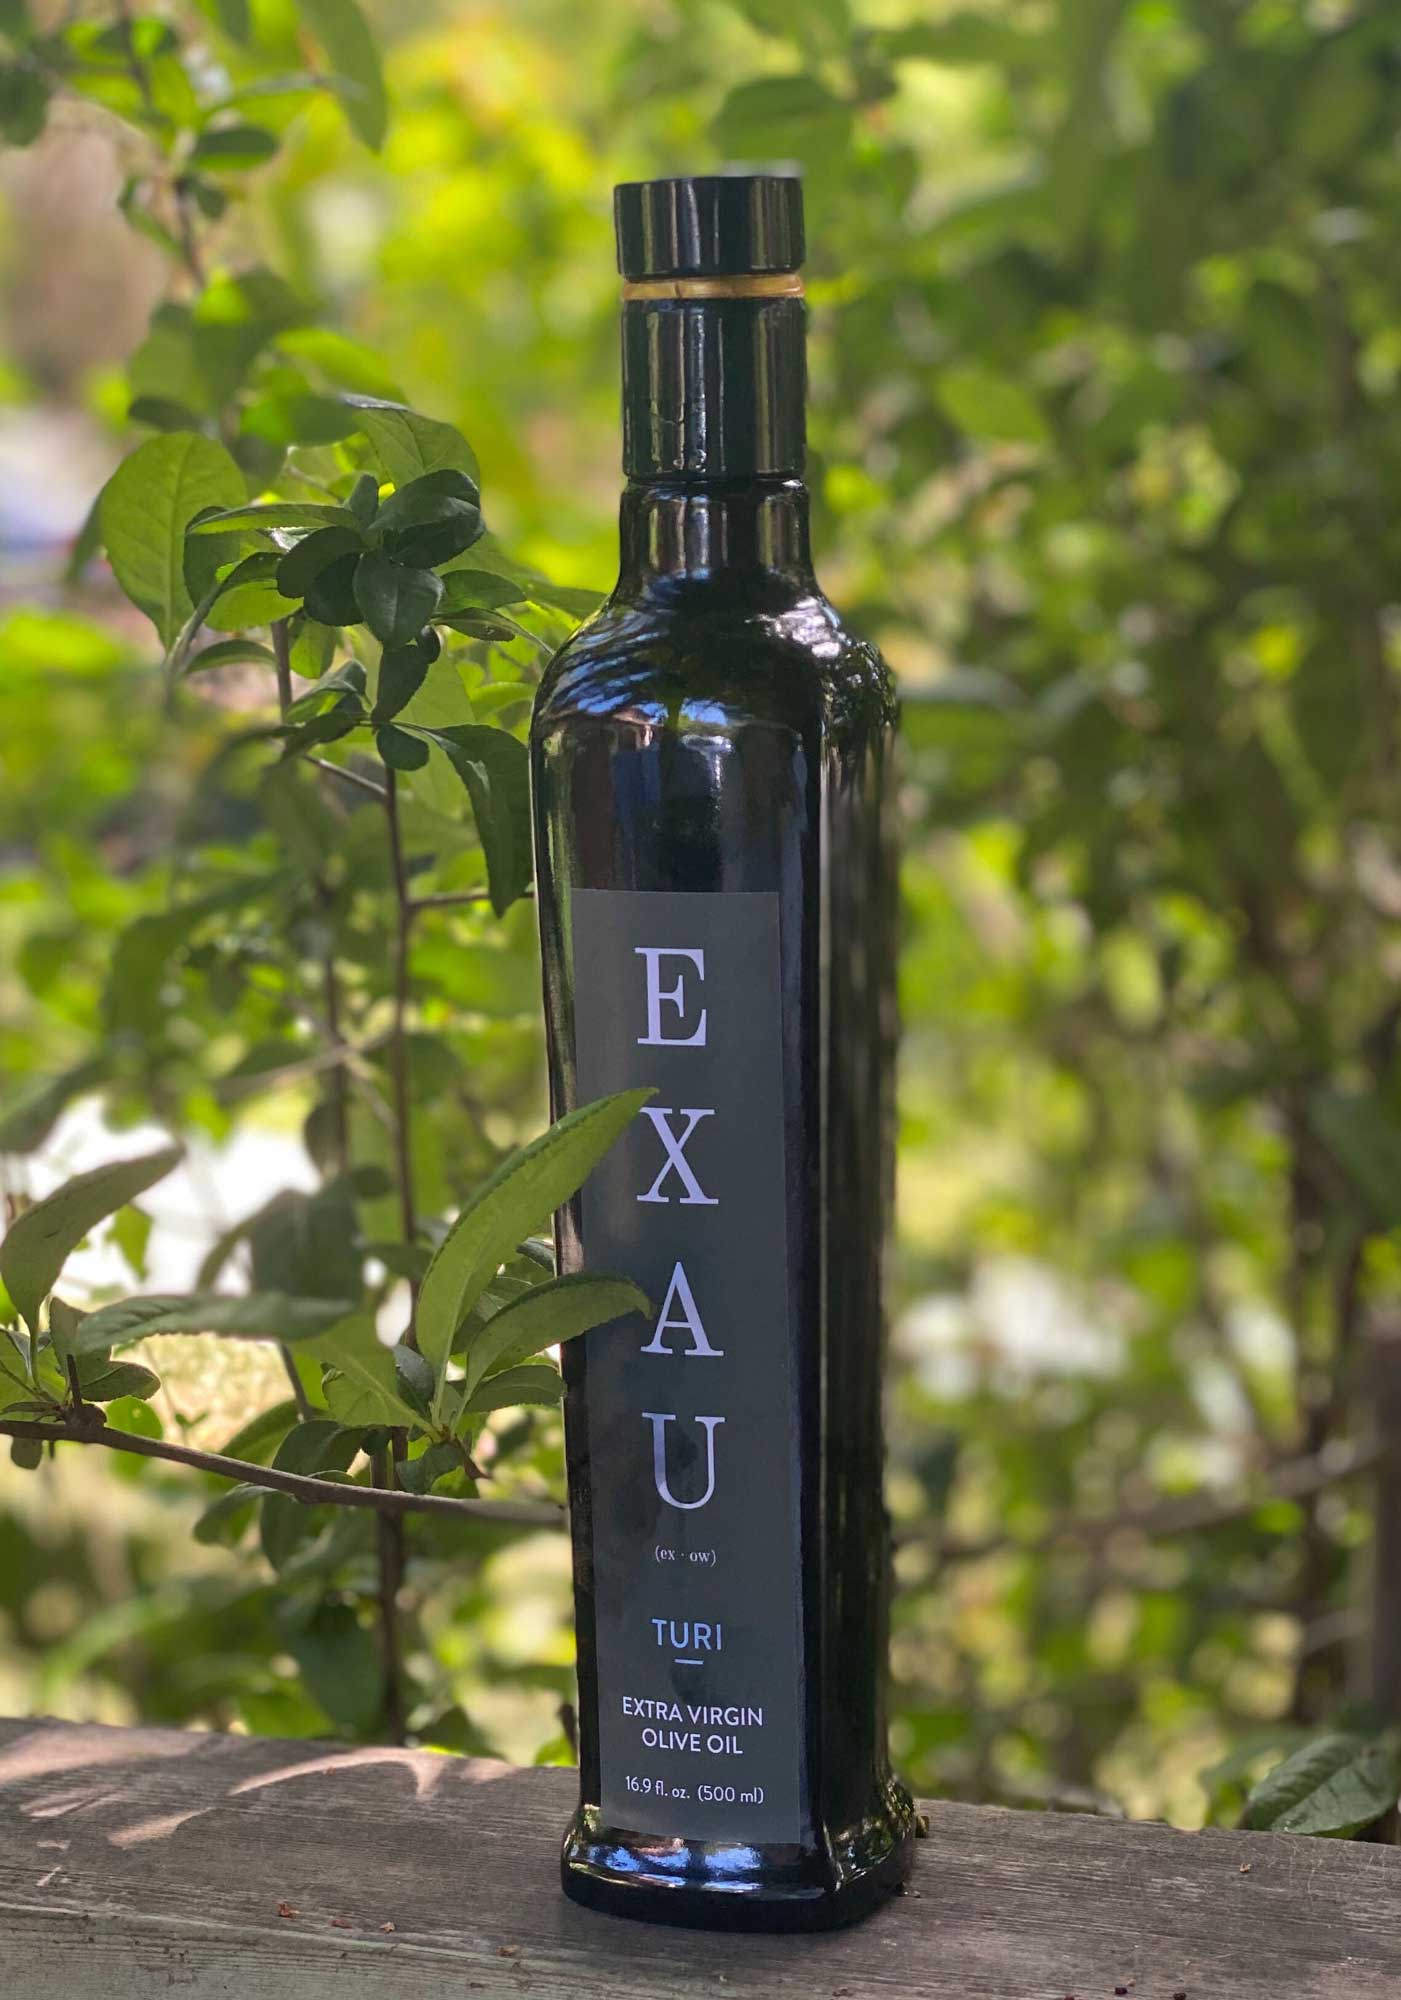 EXAU bottle in front of trees